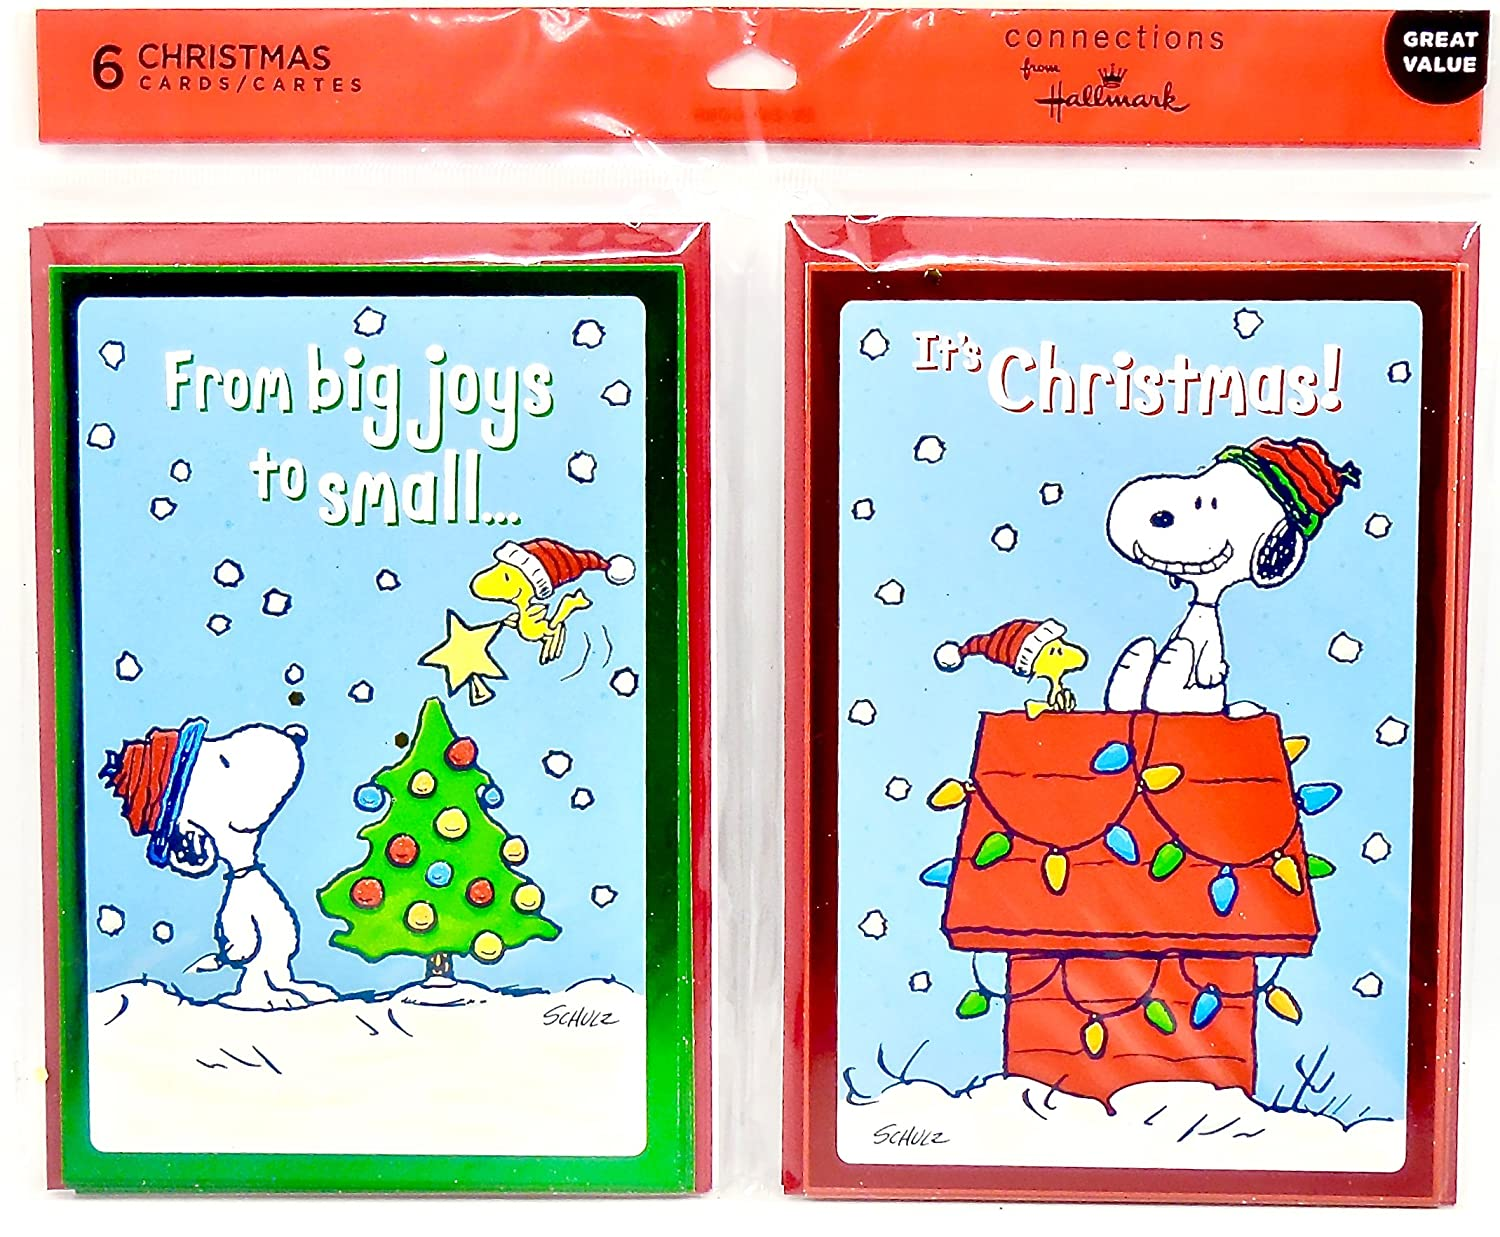 Snoopy Christmas Cards.Christmas Snoopy Greeting Cards 6 Cards Envelopes